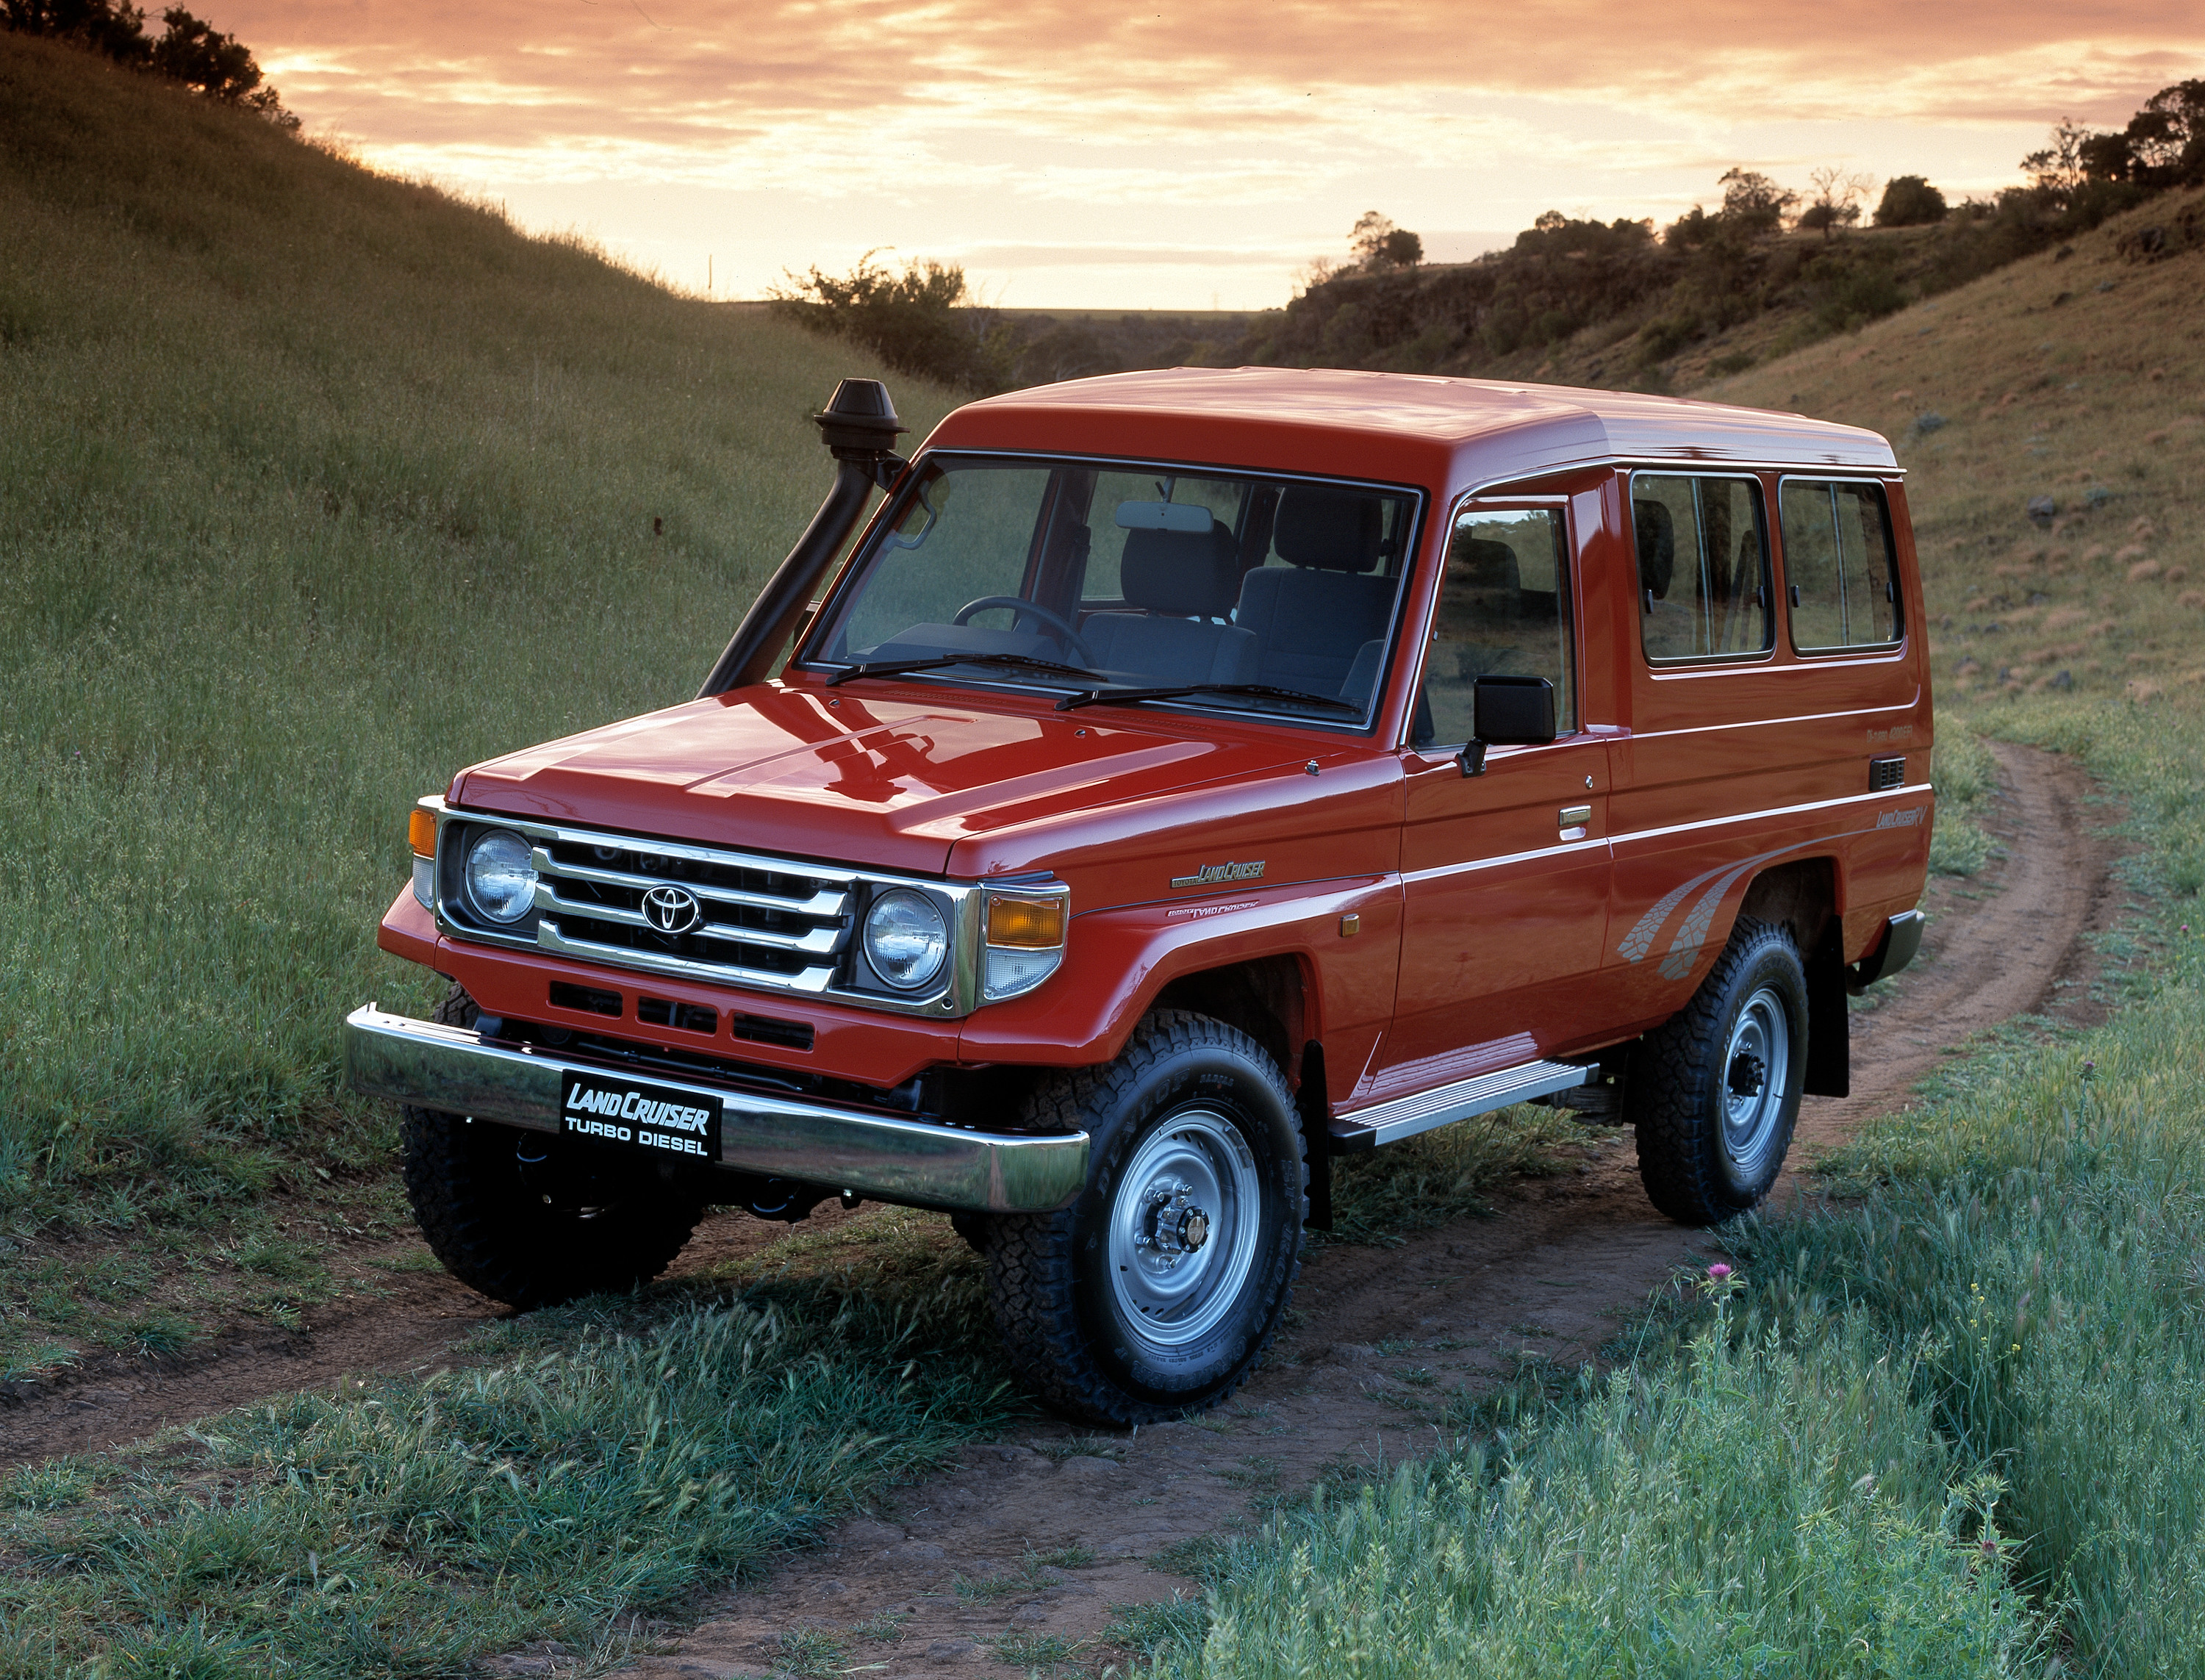 Toyota Land Cruiser 70 Set To Be 5 Star Ancap Rated Paul Tan Image 2001 383180